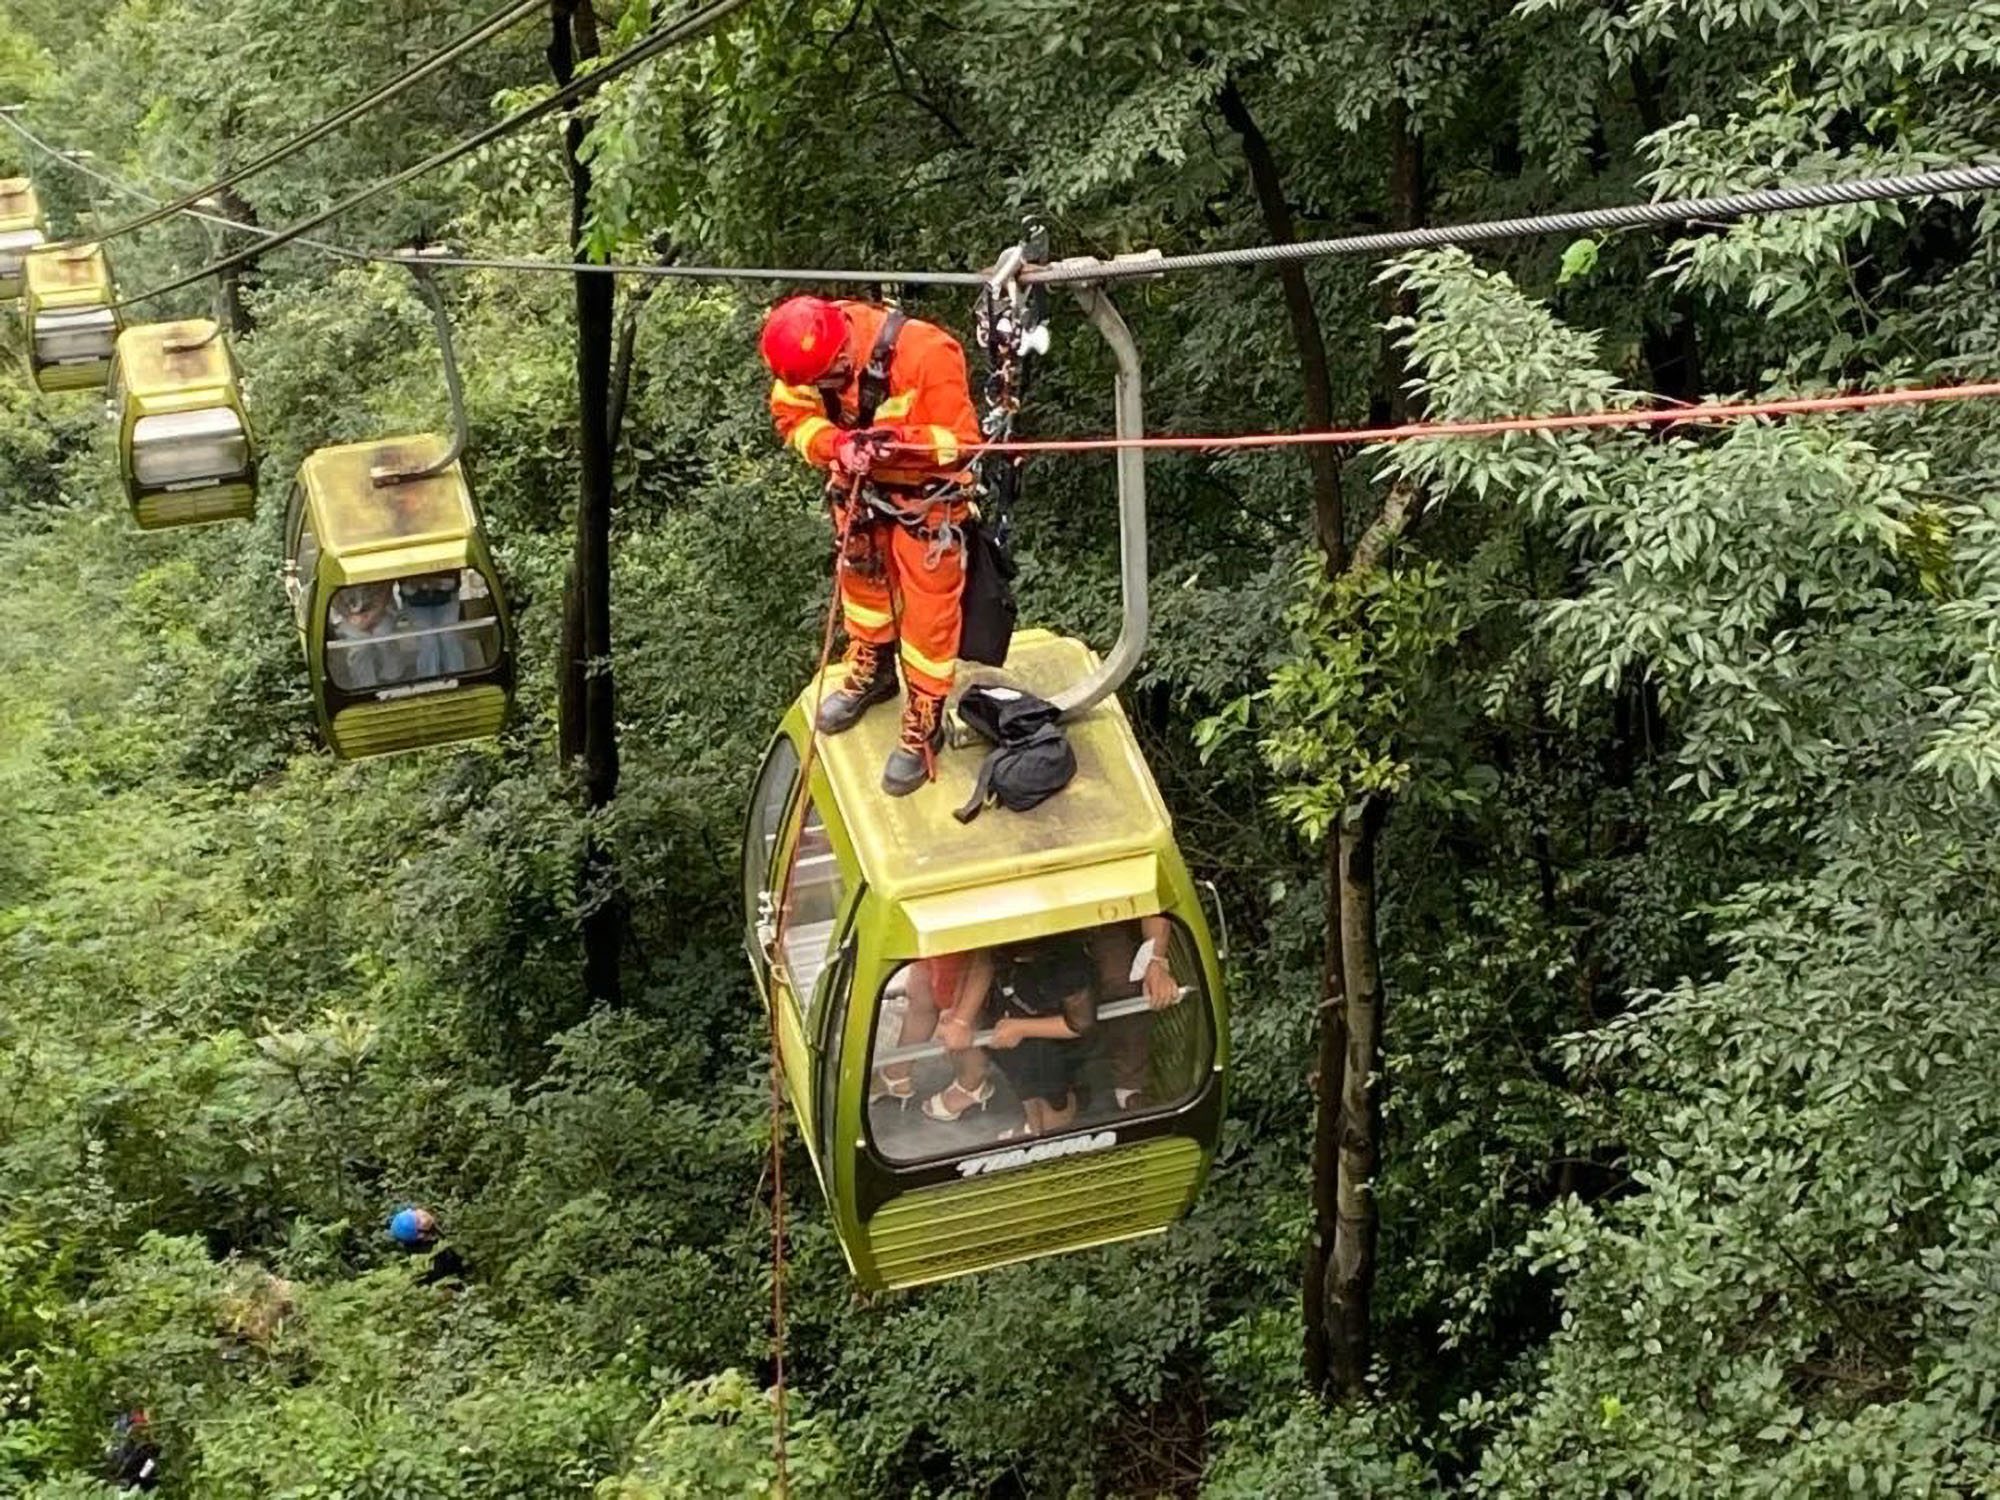 Stranded tourists exit cable cars after power outage